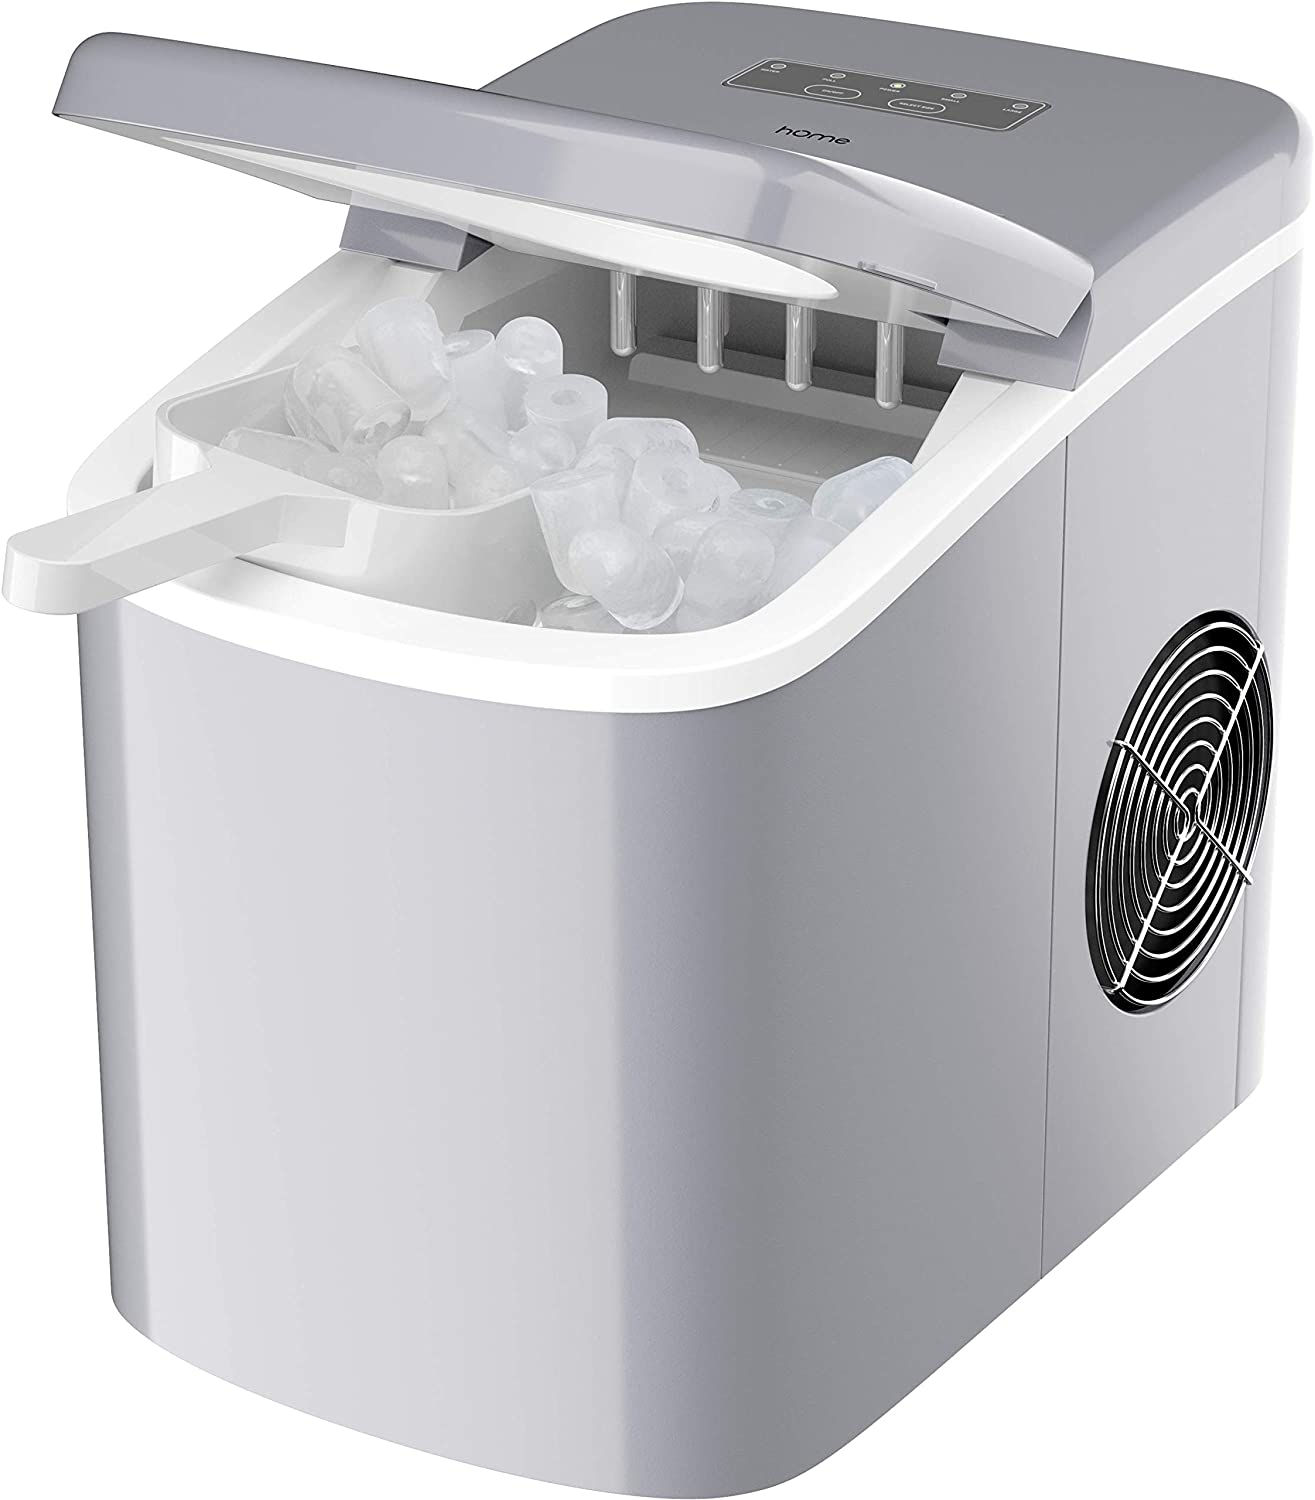 What are the uses of ice makers?